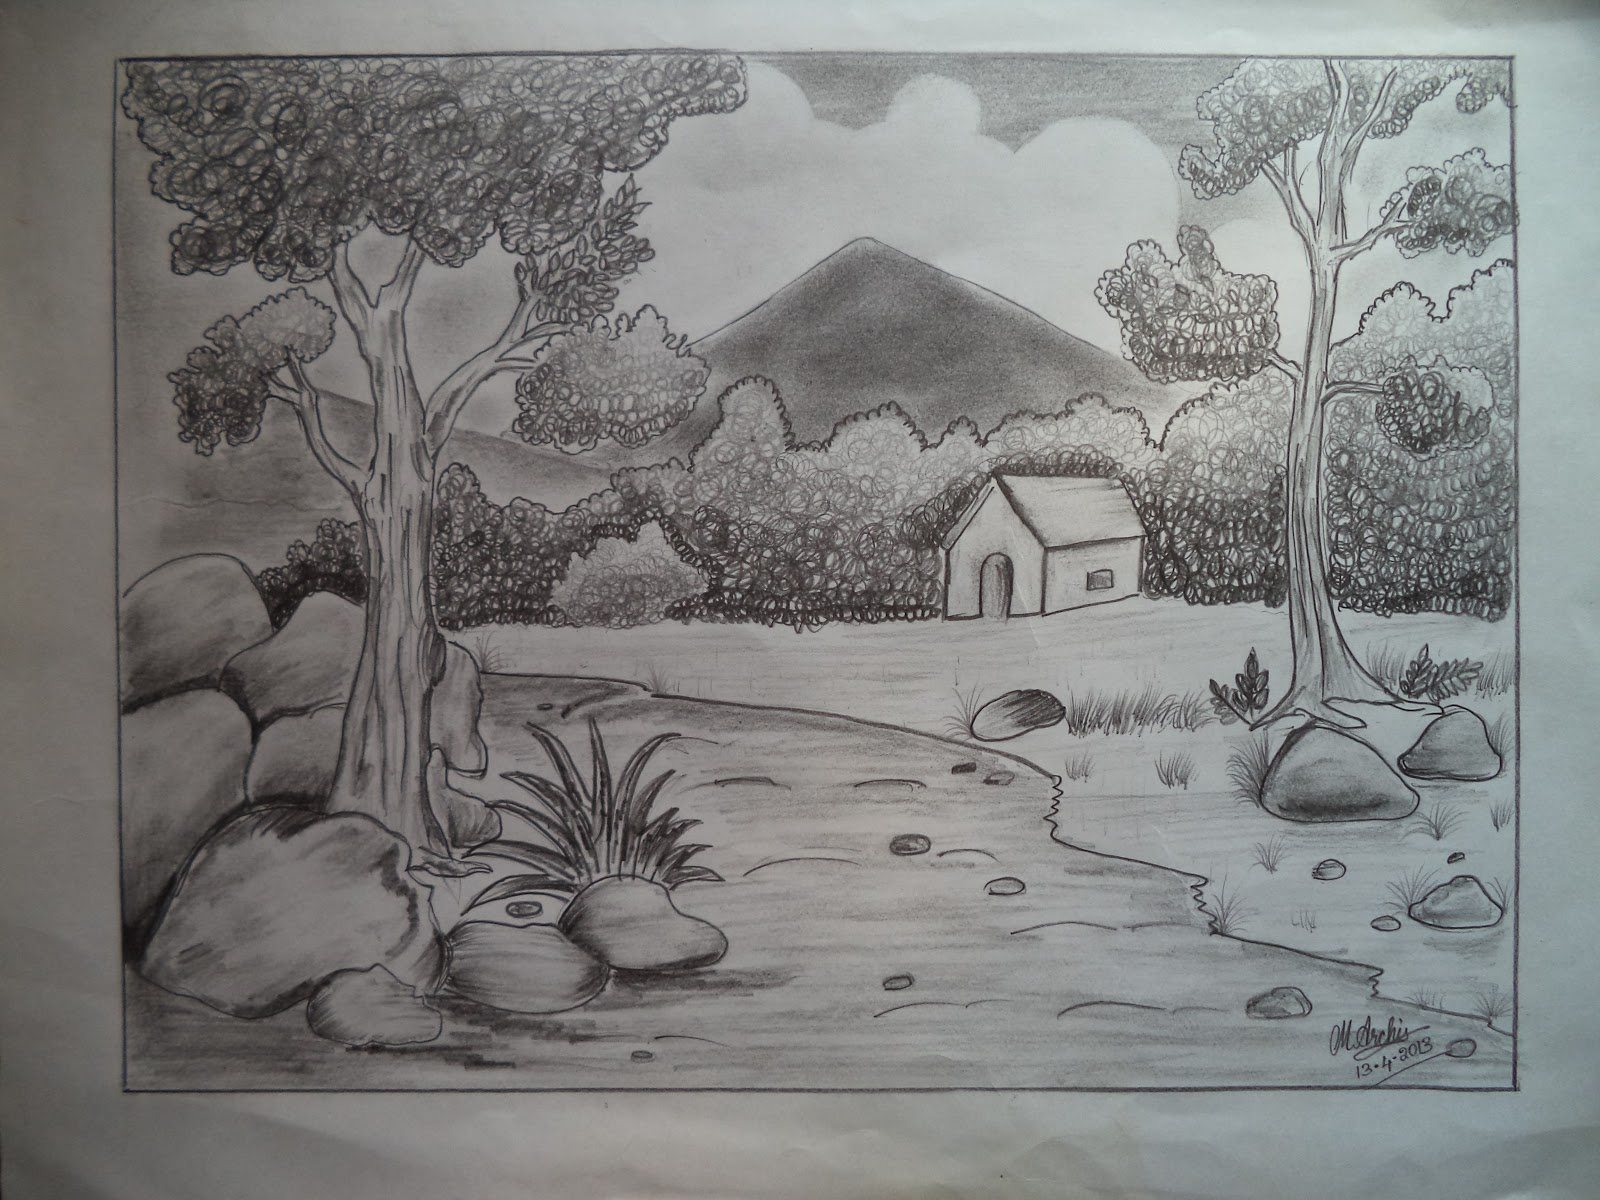 Pencil art nature sketch